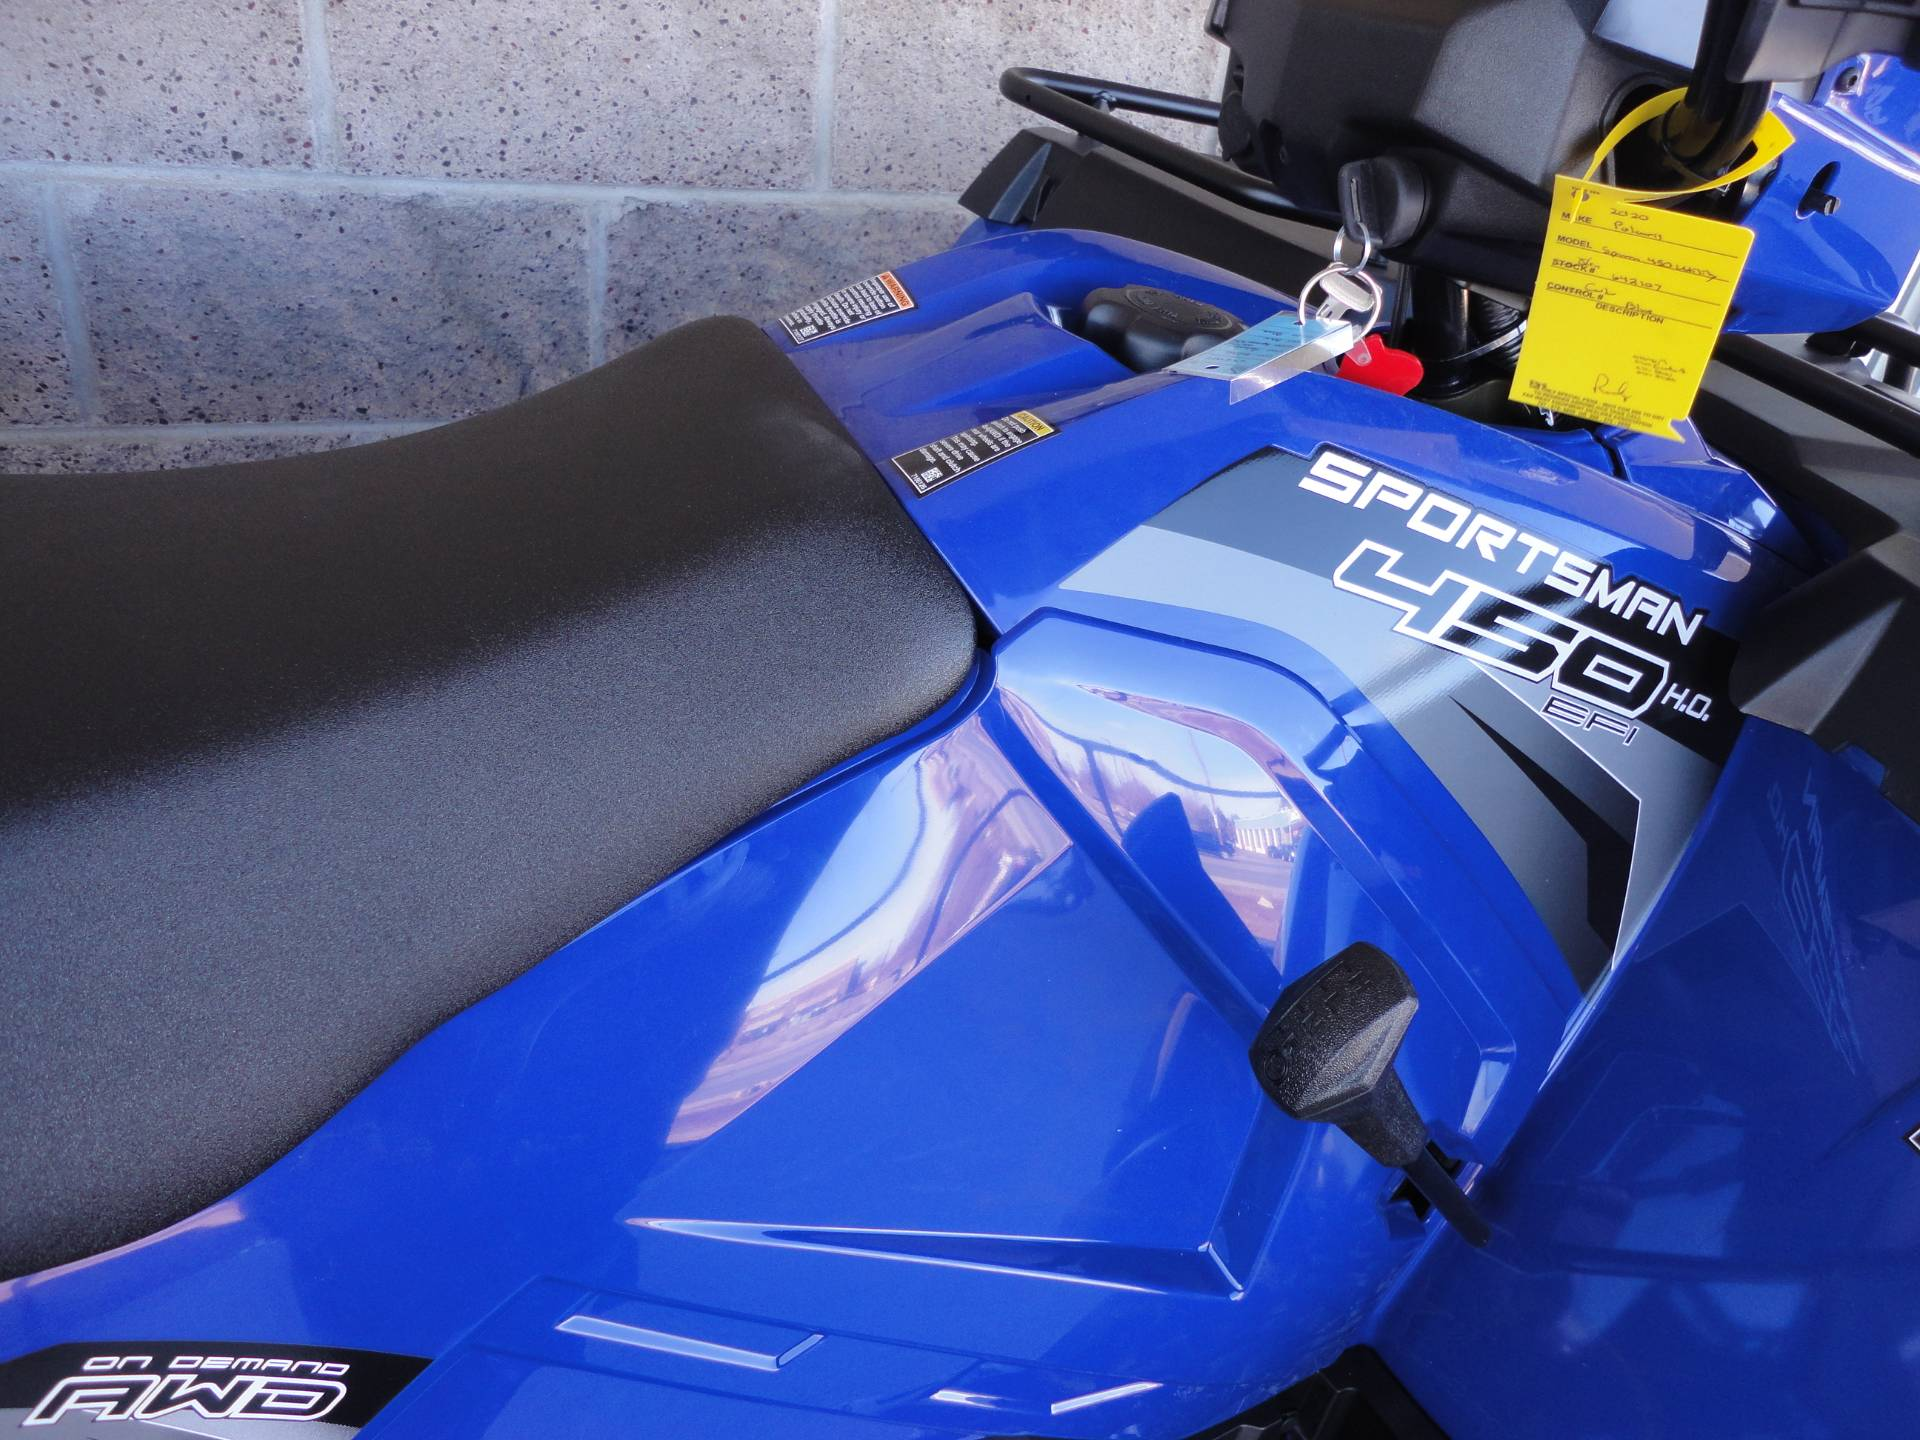 2020 Polaris Sportsman 450 H.O. Utility Package in Denver, Colorado - Photo 13